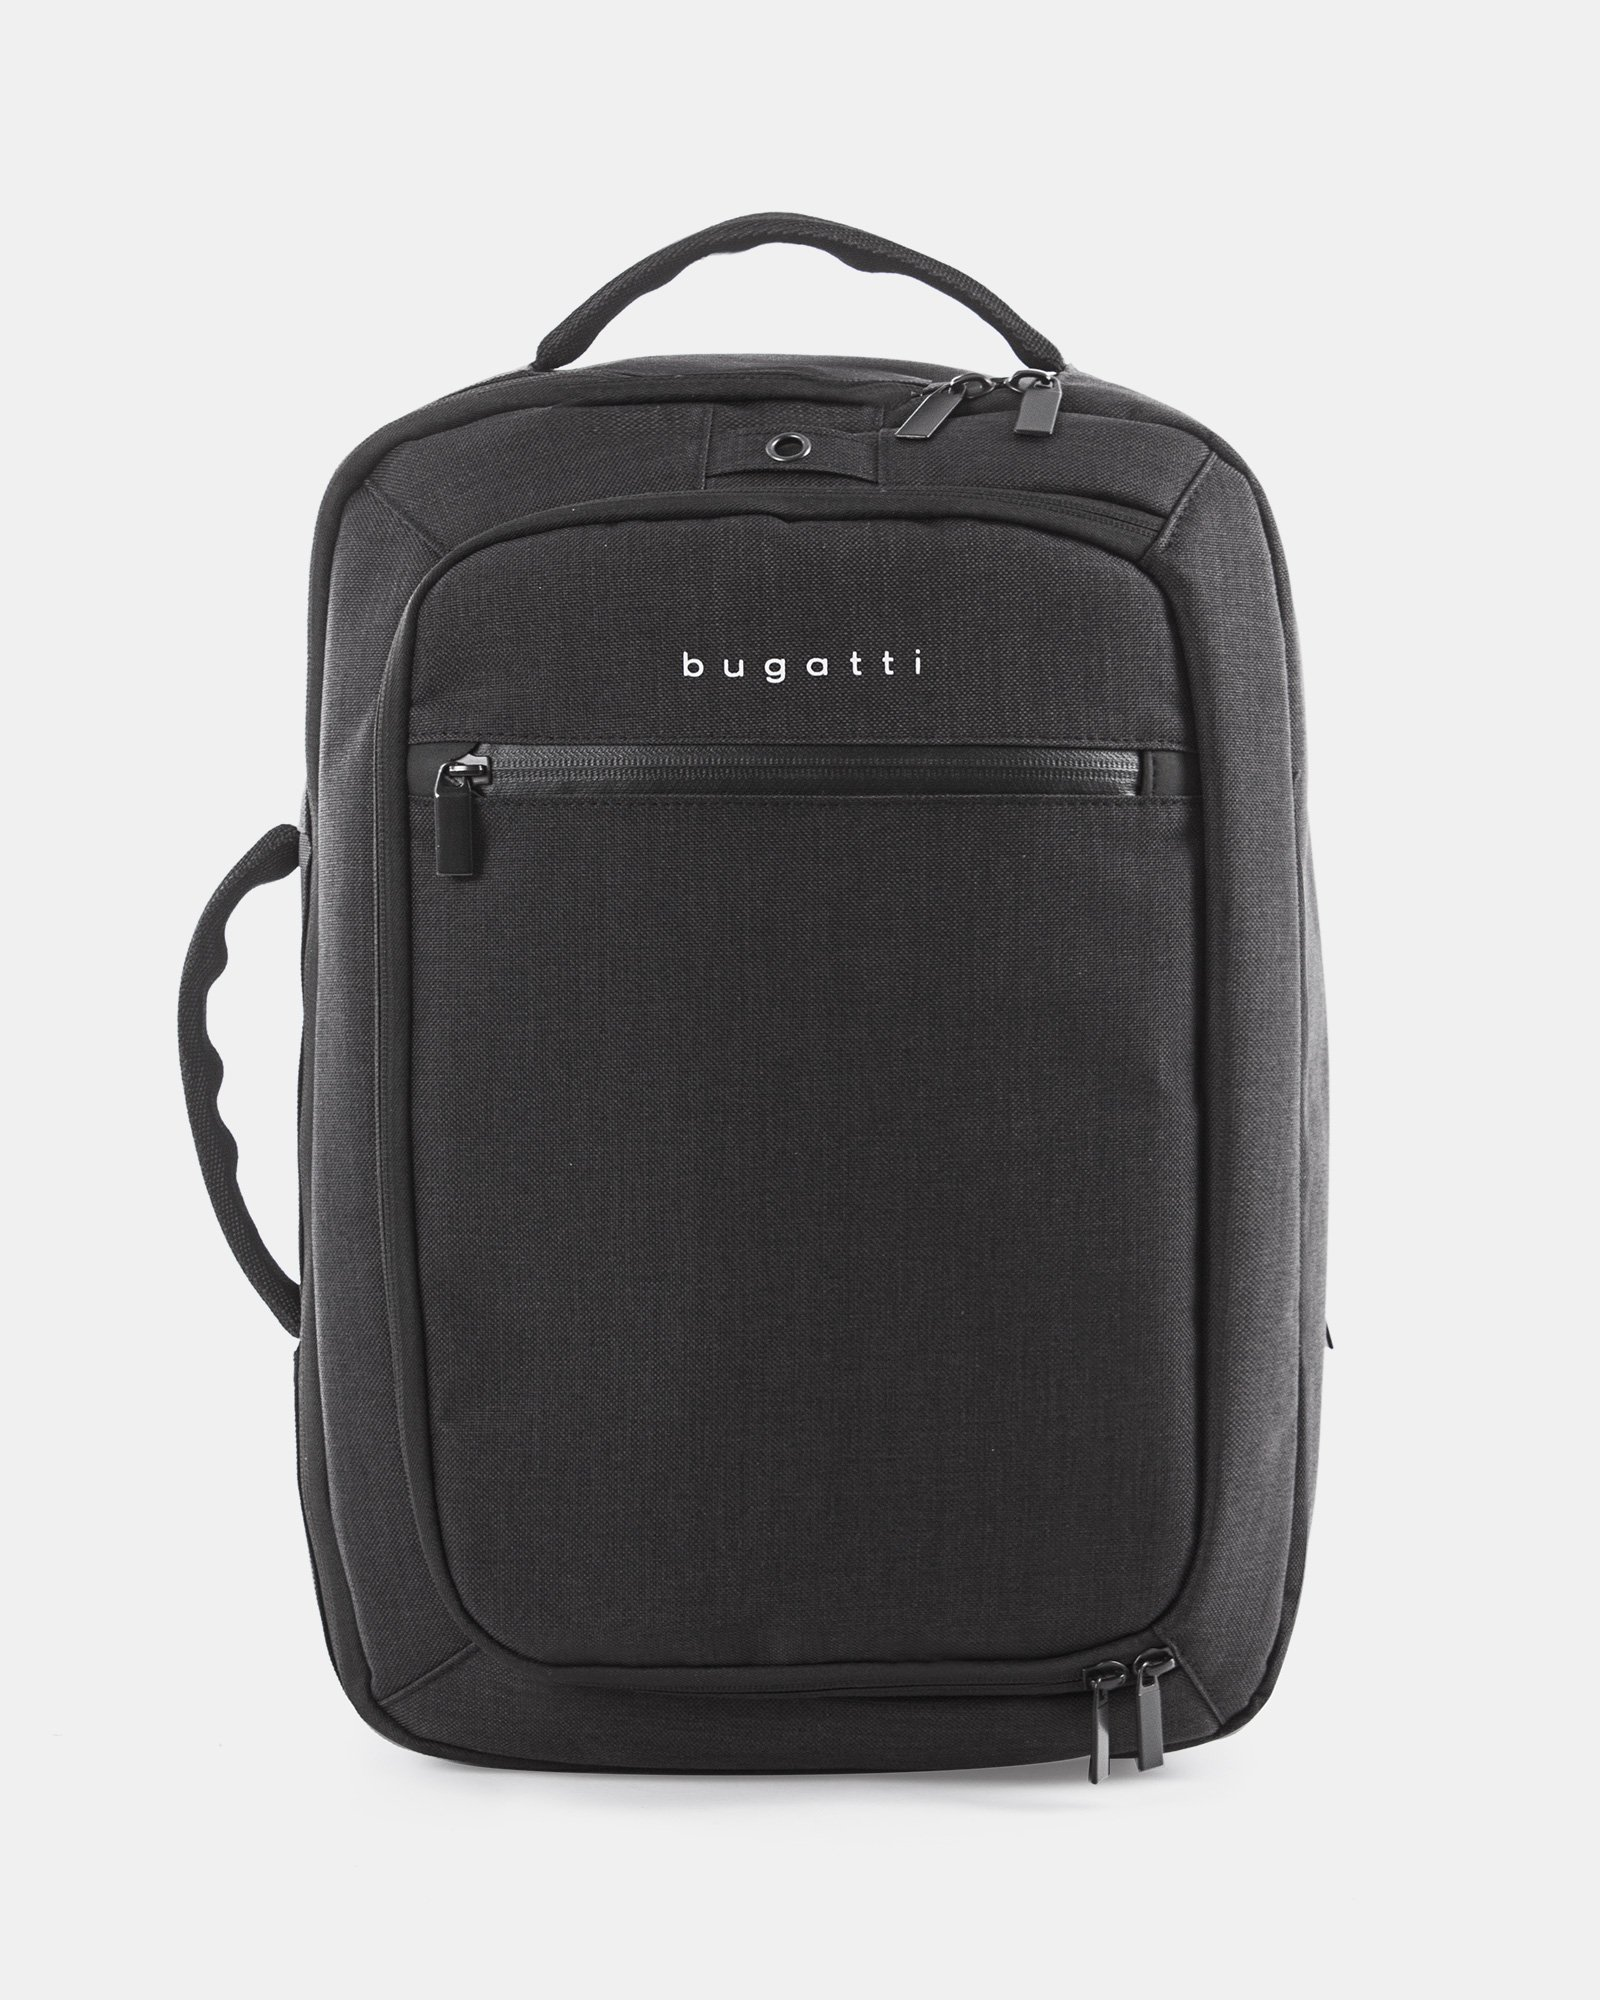 """Traveller - CONVERTIBLE BACKPACK/briefcase for 15.6"""" laptop with Back compartment - Charcoal   - Bugatti - Zoom"""